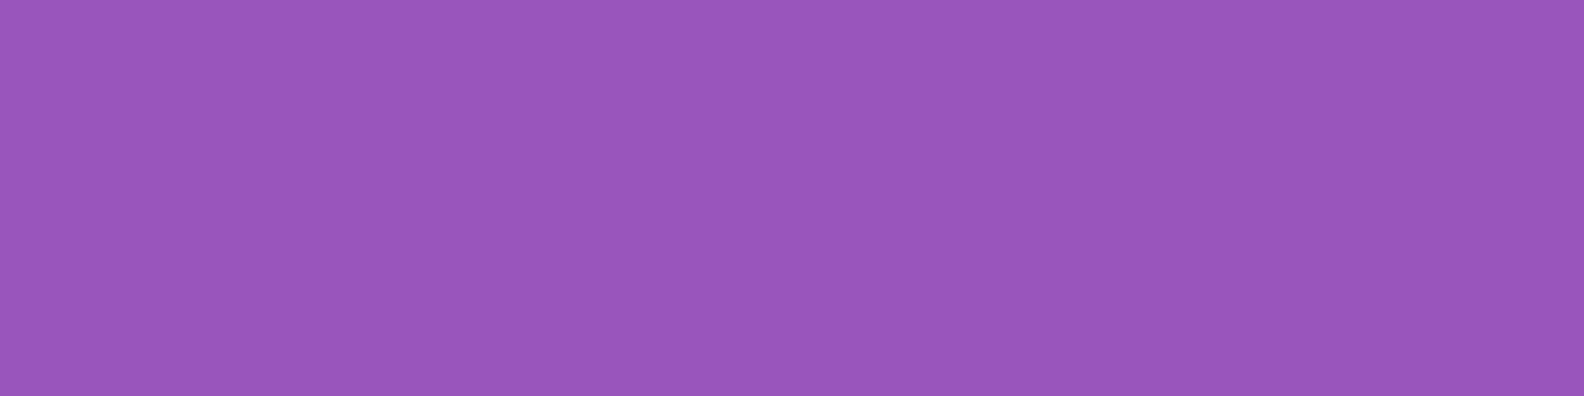 1584x396 Deep Lilac Solid Color Background